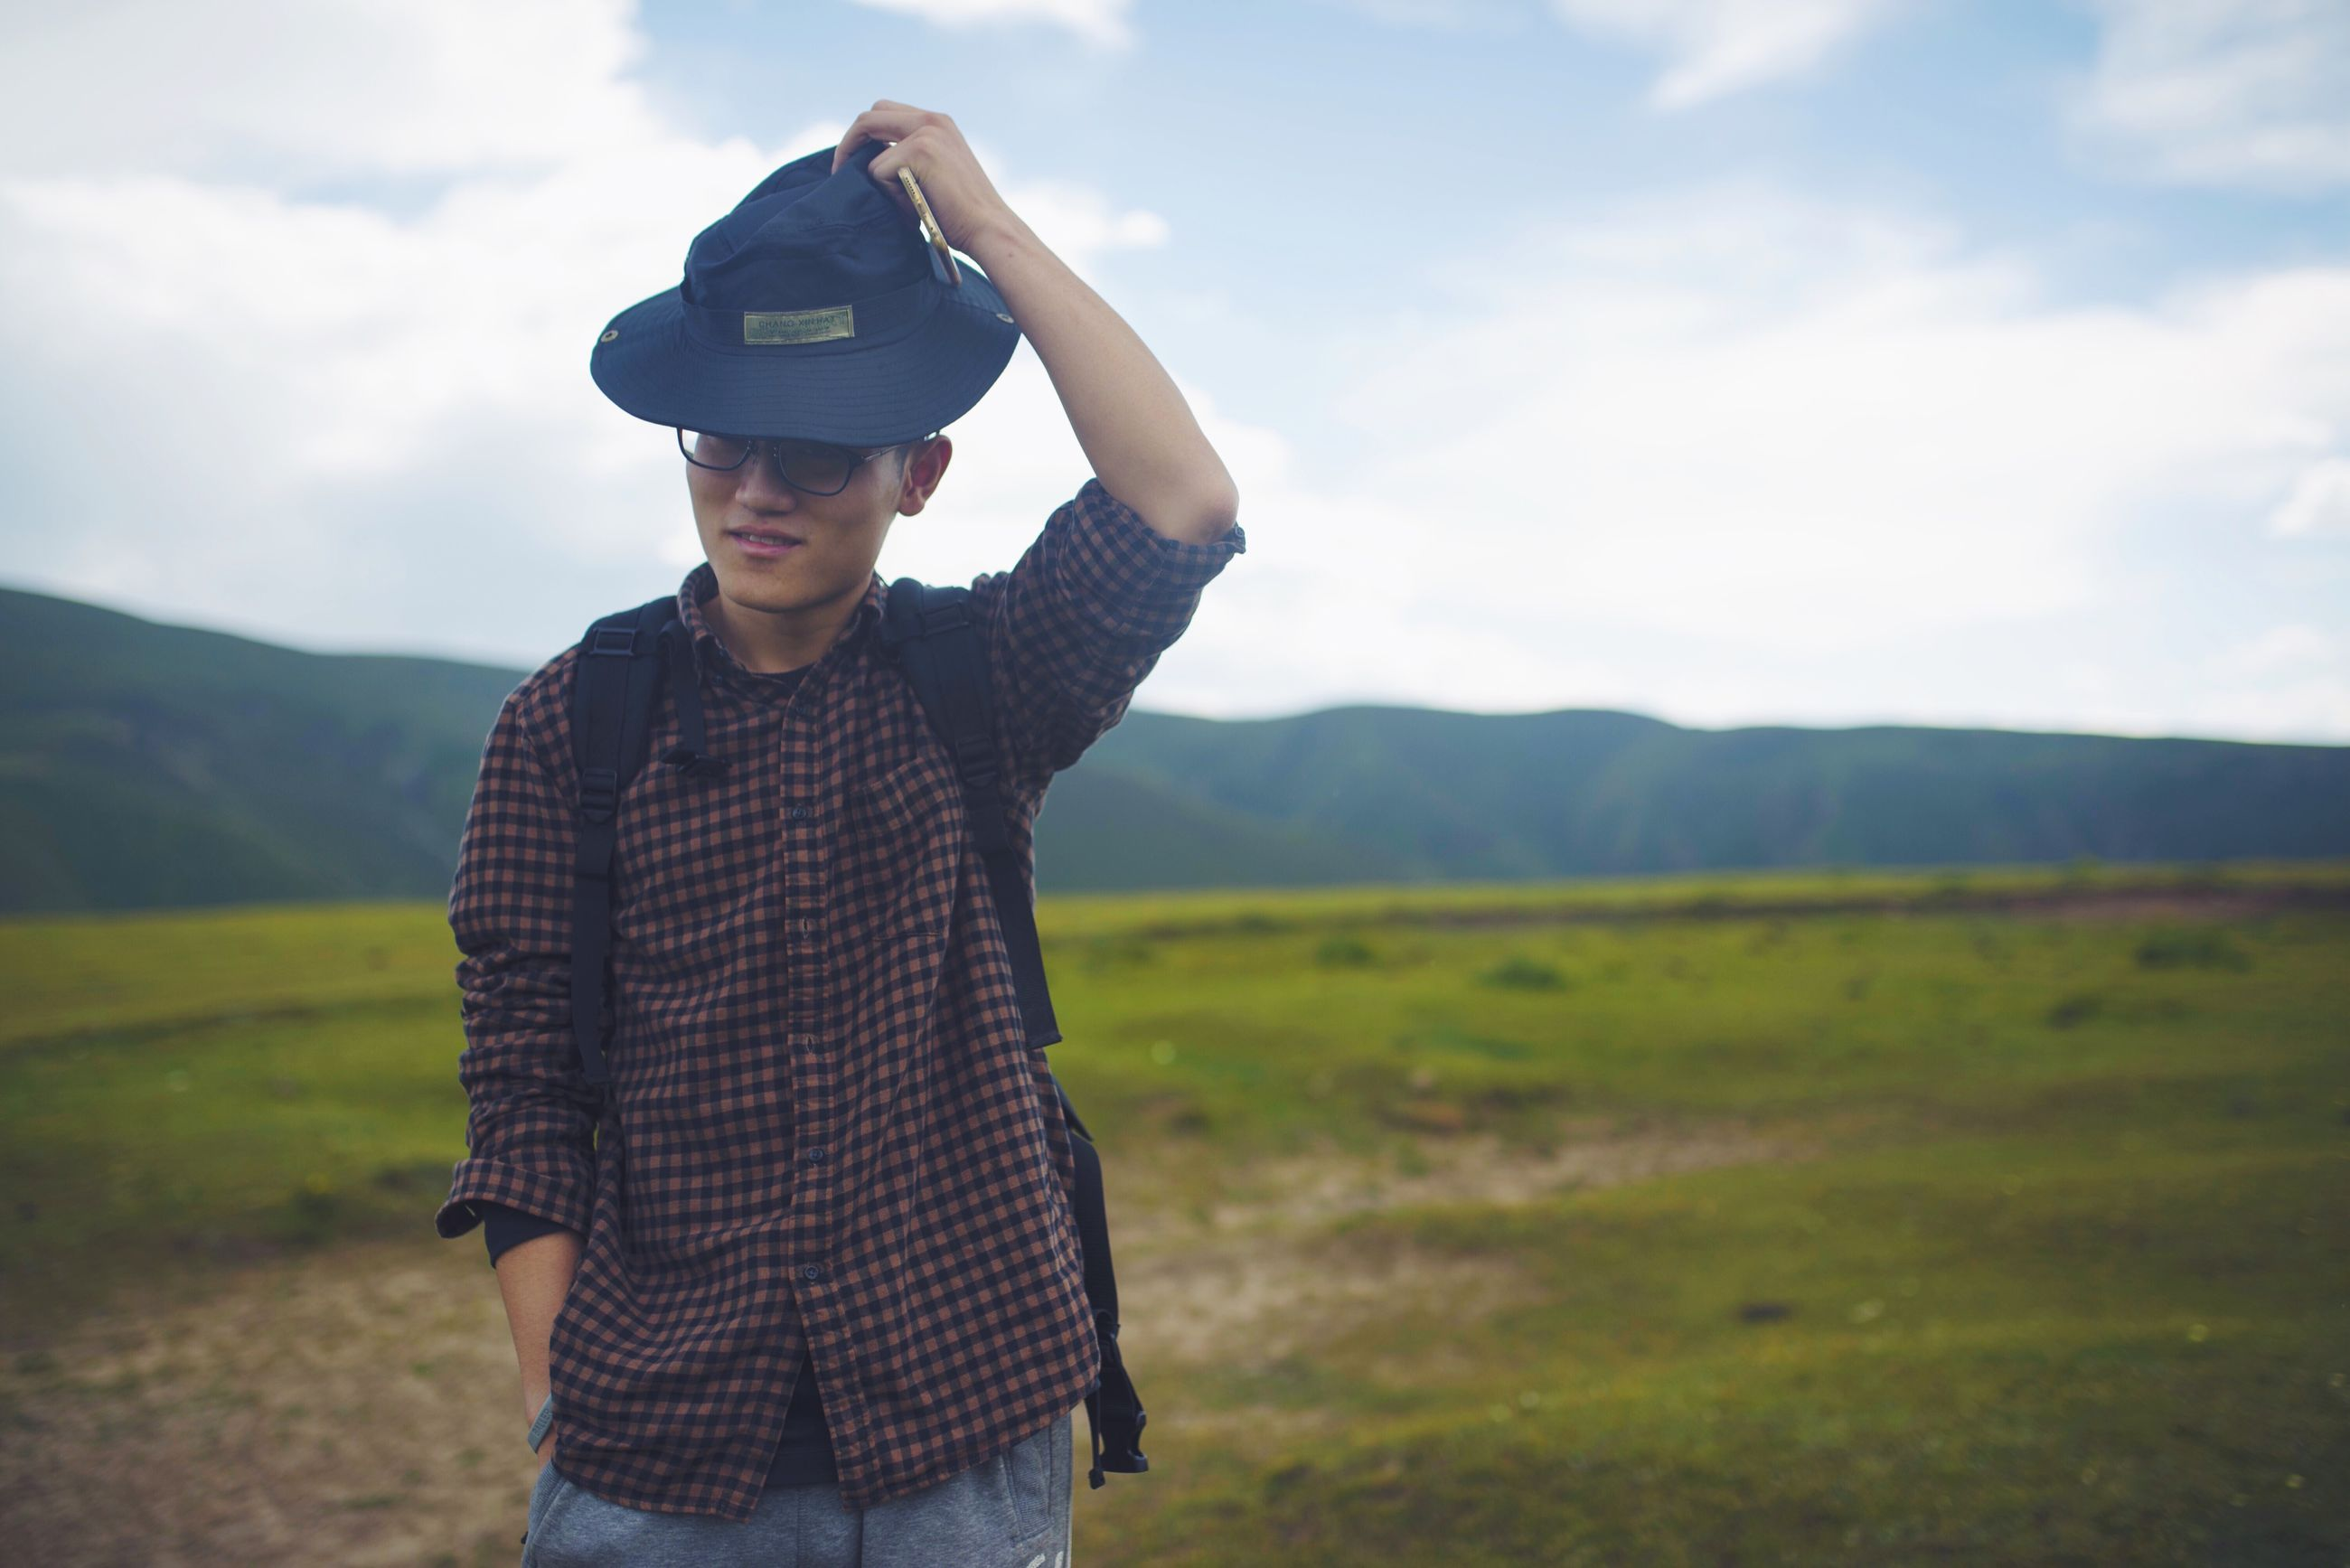 lifestyles, leisure activity, sky, casual clothing, landscape, young adult, person, field, cloud - sky, grass, three quarter length, standing, mountain, cloud, sunglasses, young men, front view, tranquility